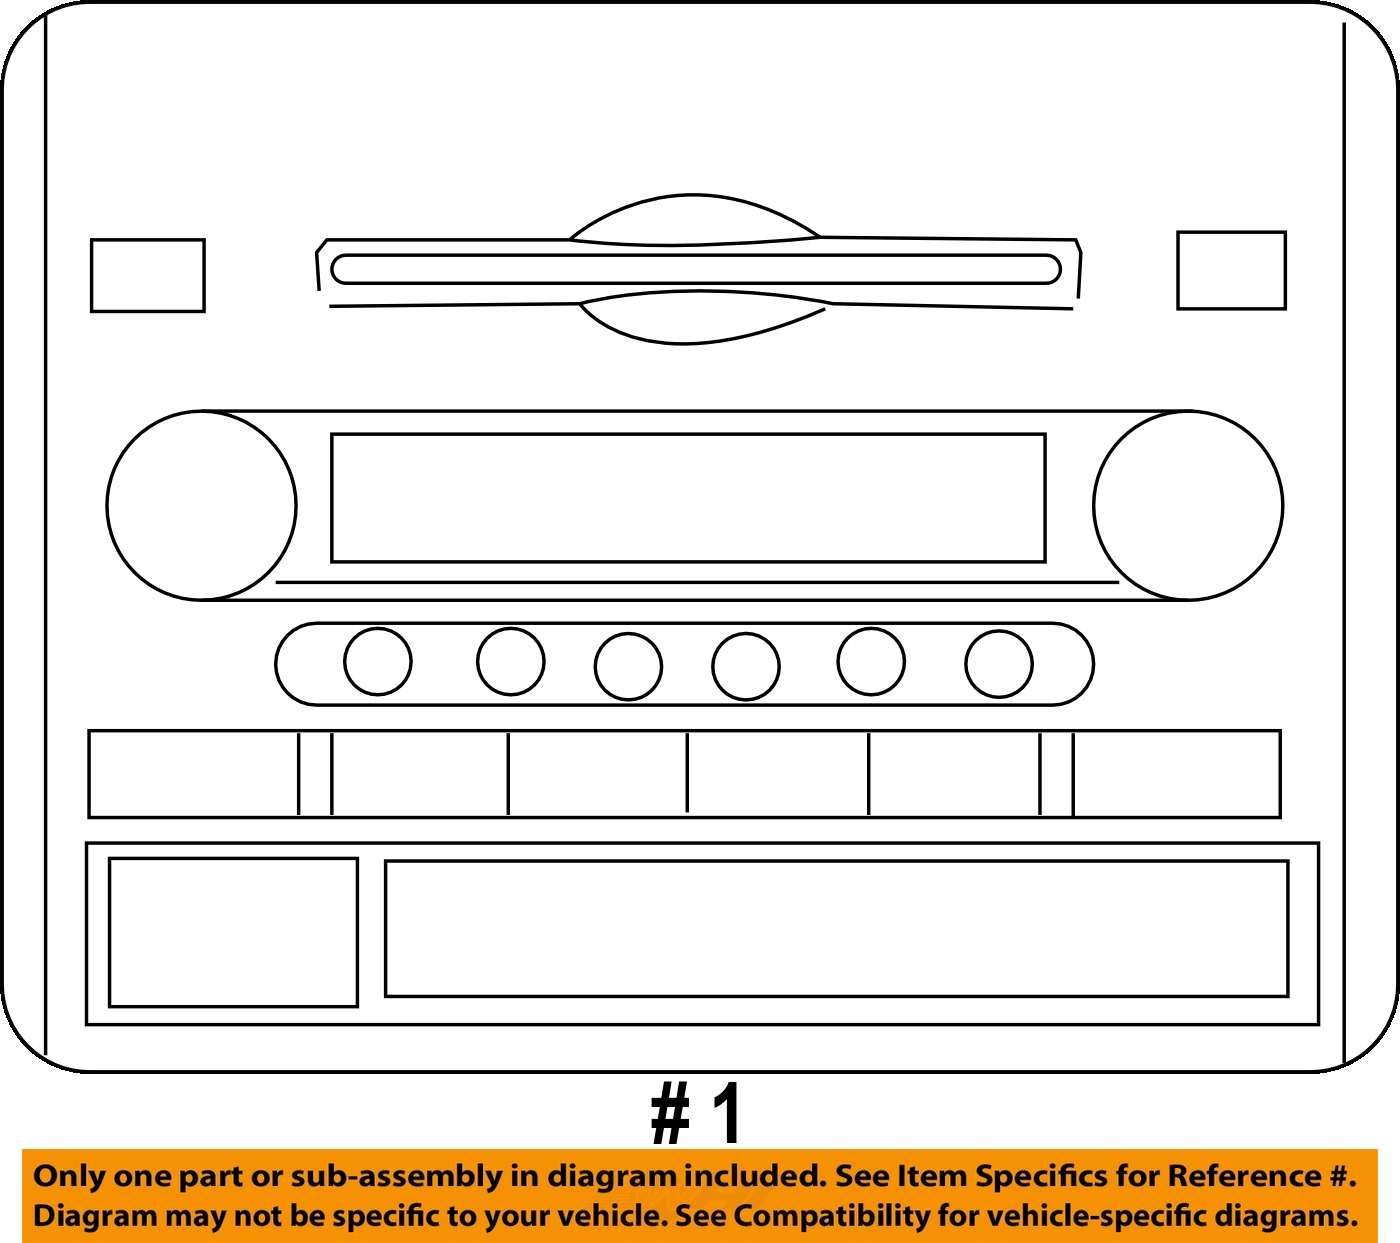 hight resolution of 2013 tacoma wiring diagram u2013 namevehicle 2013 tacoma wiring diagram toyota oem 2013 tacoma stereo